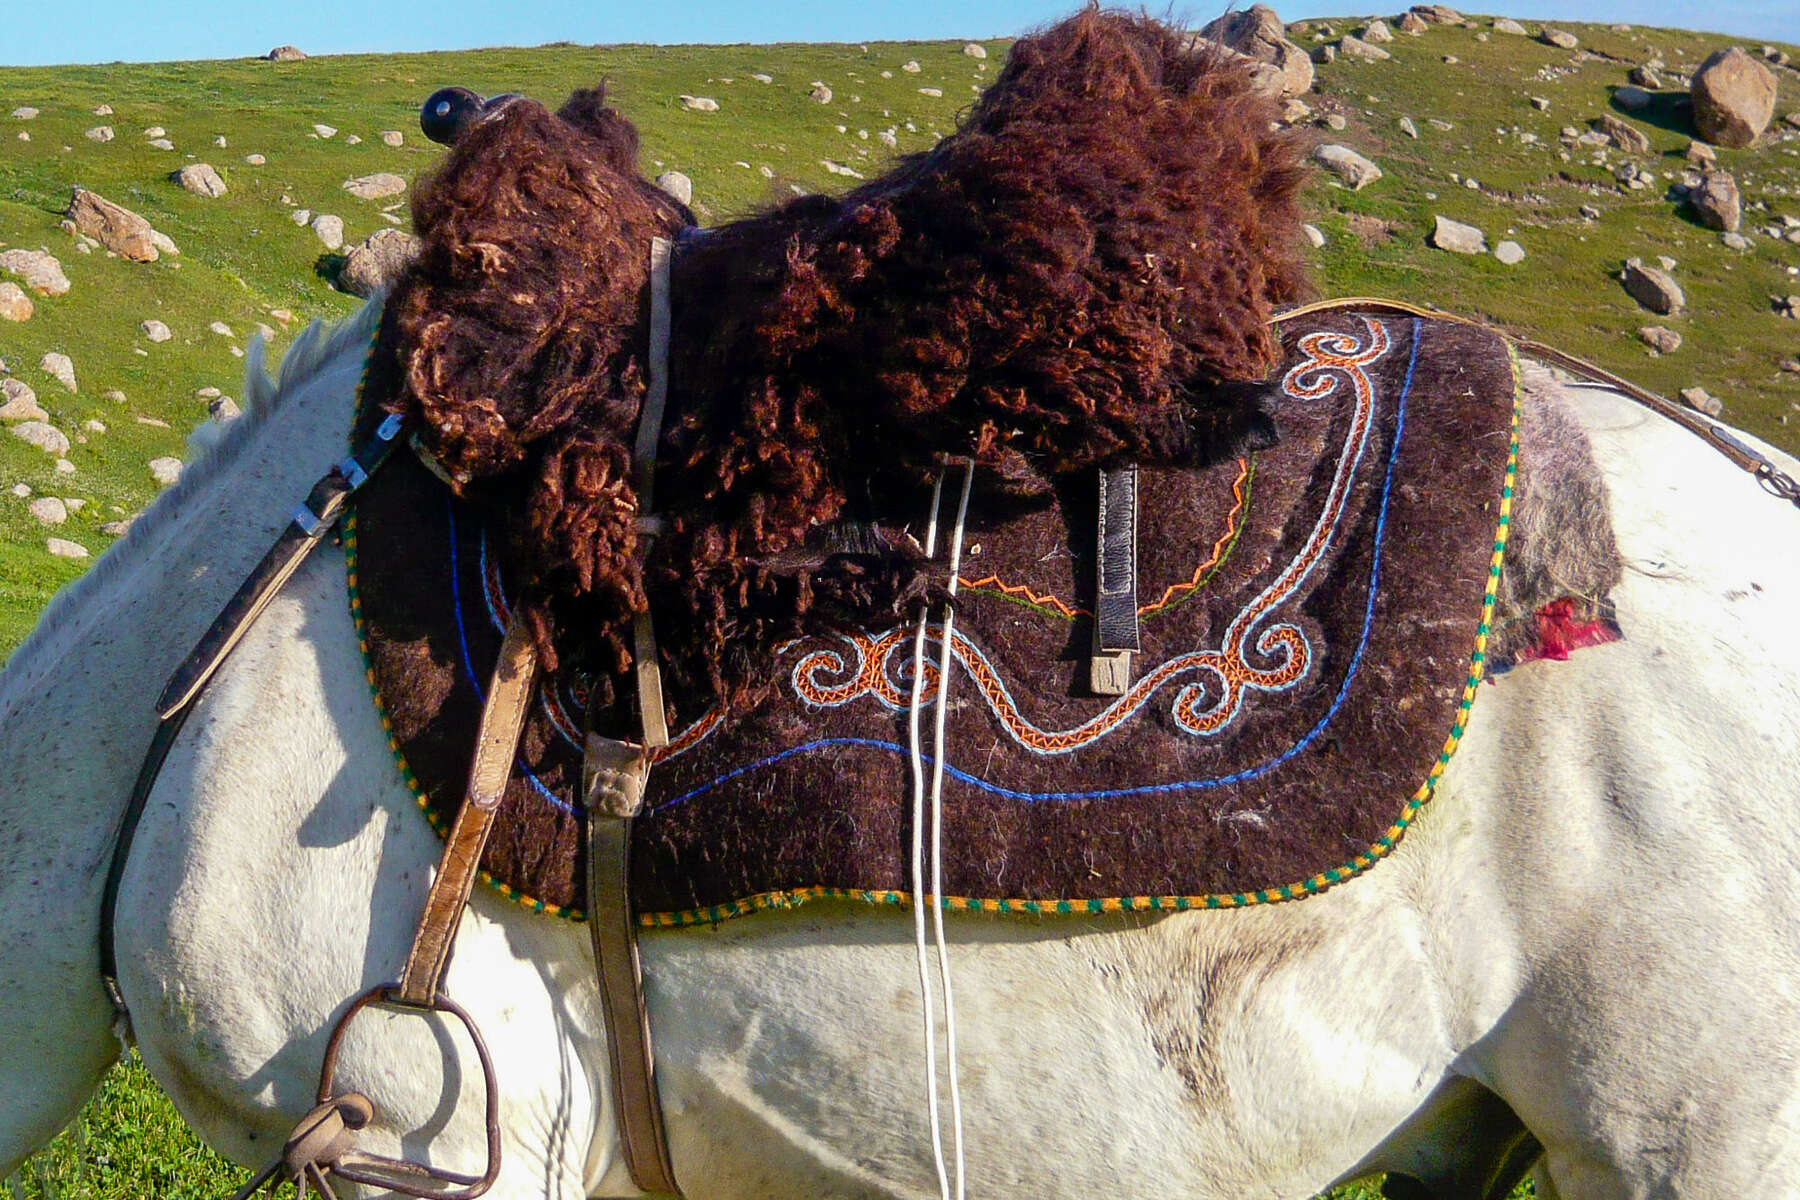 A traditional Kyrgyz saddle